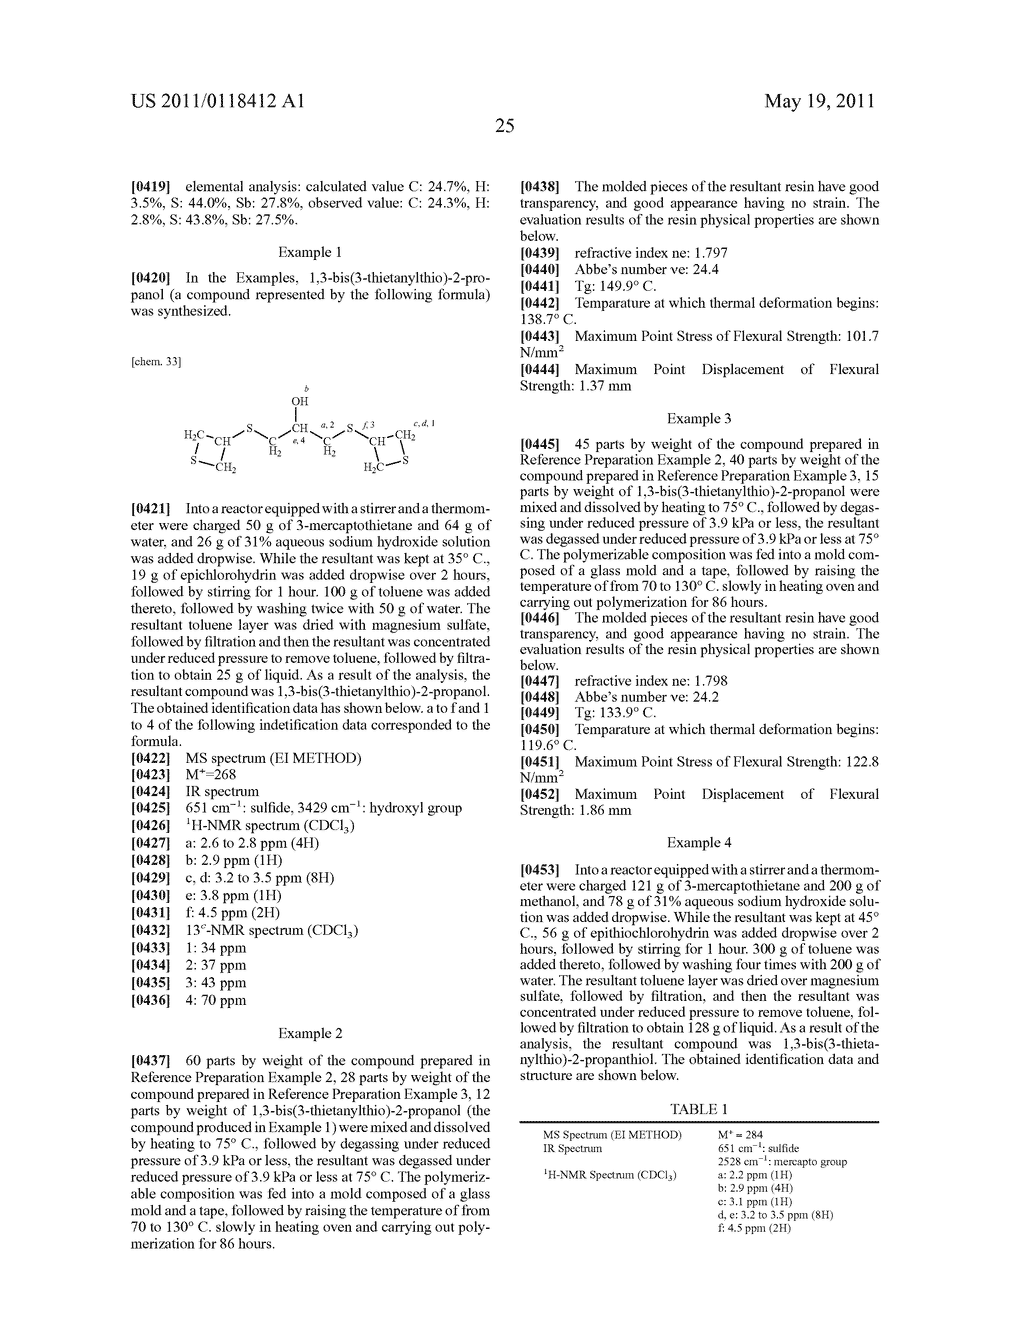 THIETANE COMPOUND, POLYMERIZABLE COMPOSITION CONTAINING THE SAME, RESIN, METHOD FOR PRODUCING THE RESIN, AND USE OF THE POLYMERIZABLE COMPOSITION AND THE RESIN - diagram, schematic, and image 26